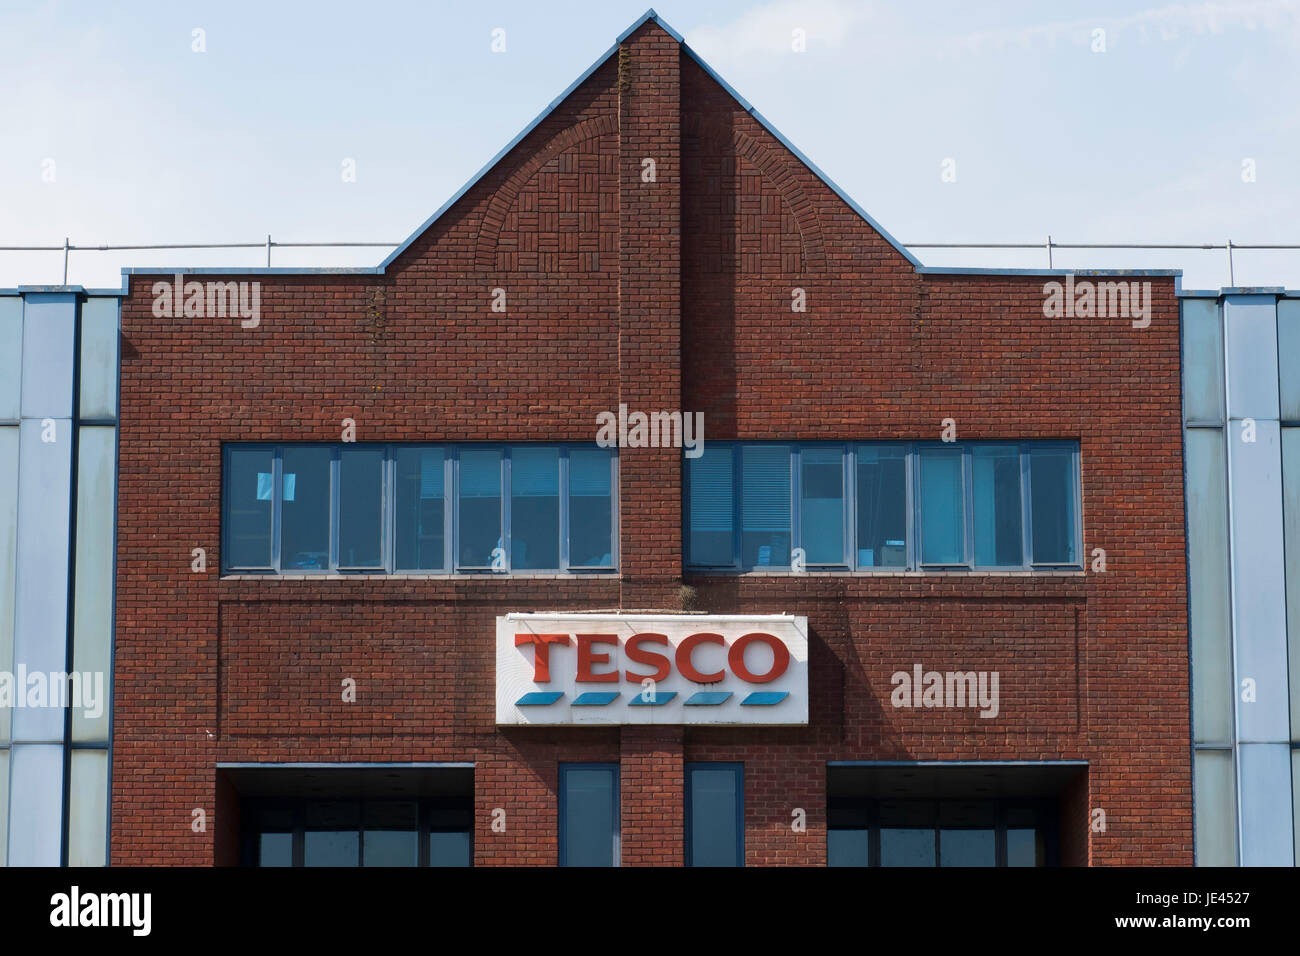 Tesco call centre on Maes-Y-Coed Road in Cardiff, Wales, UK. The site will close with the loss of 1000 jobs. - Stock Image